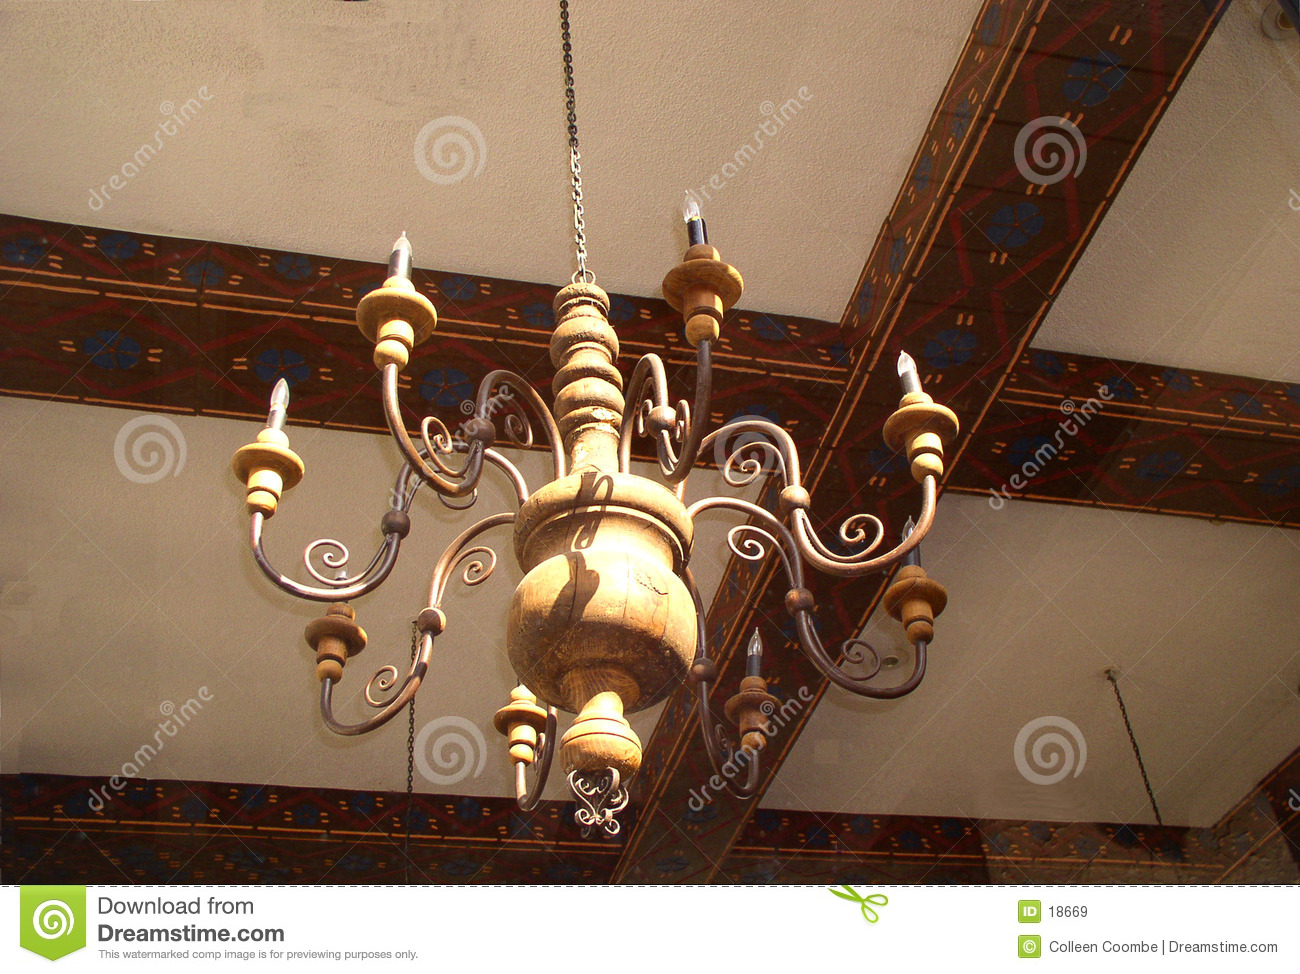 Spanish Chandelier Spanish Chandelier Stock Image Image Of Hand Wood Sunshine 18669